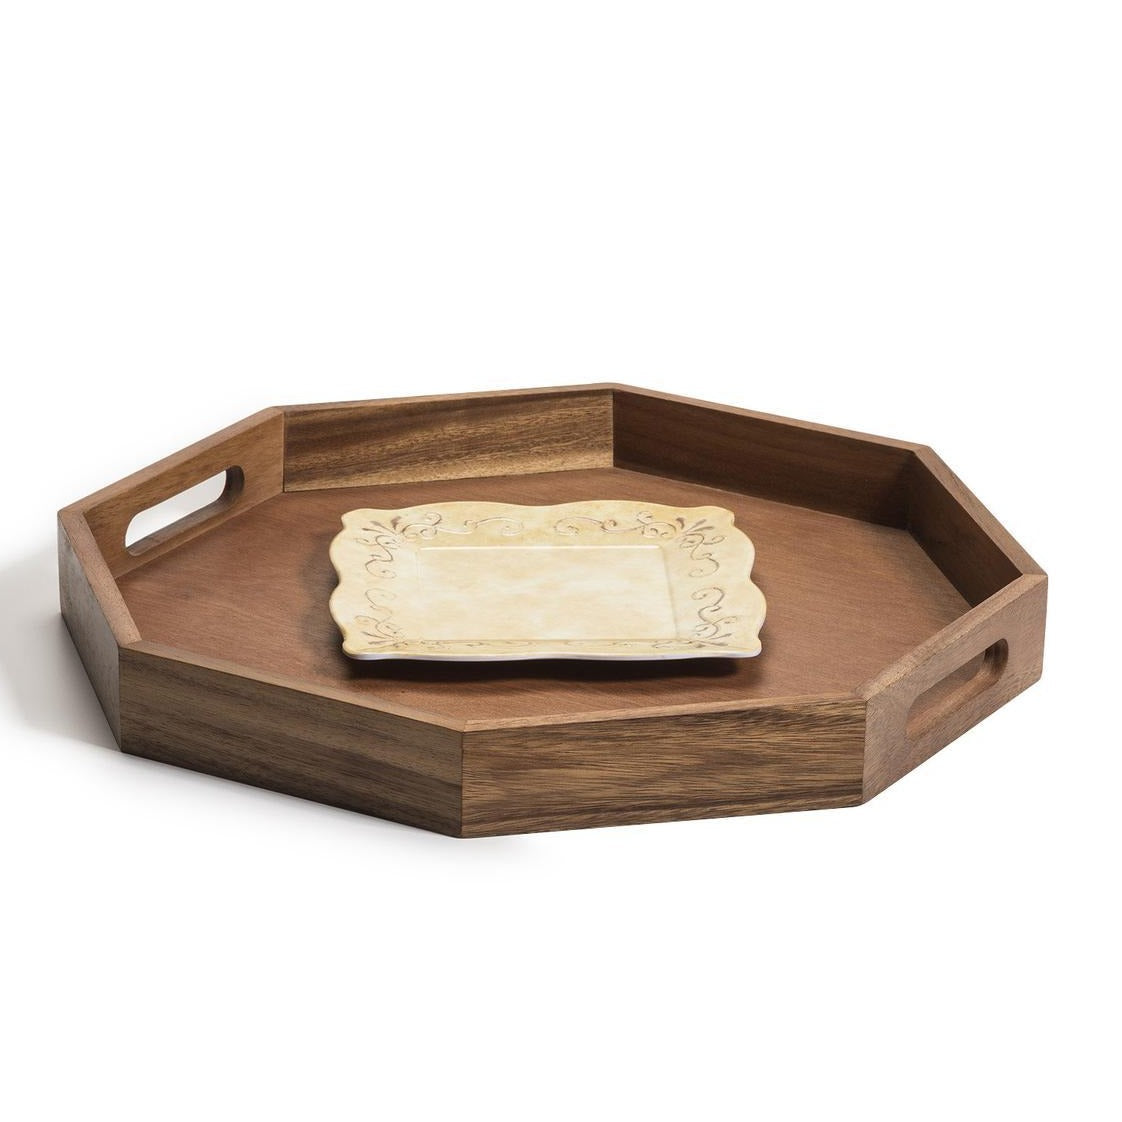 17 inch octagon acacia wood serving tray with plate